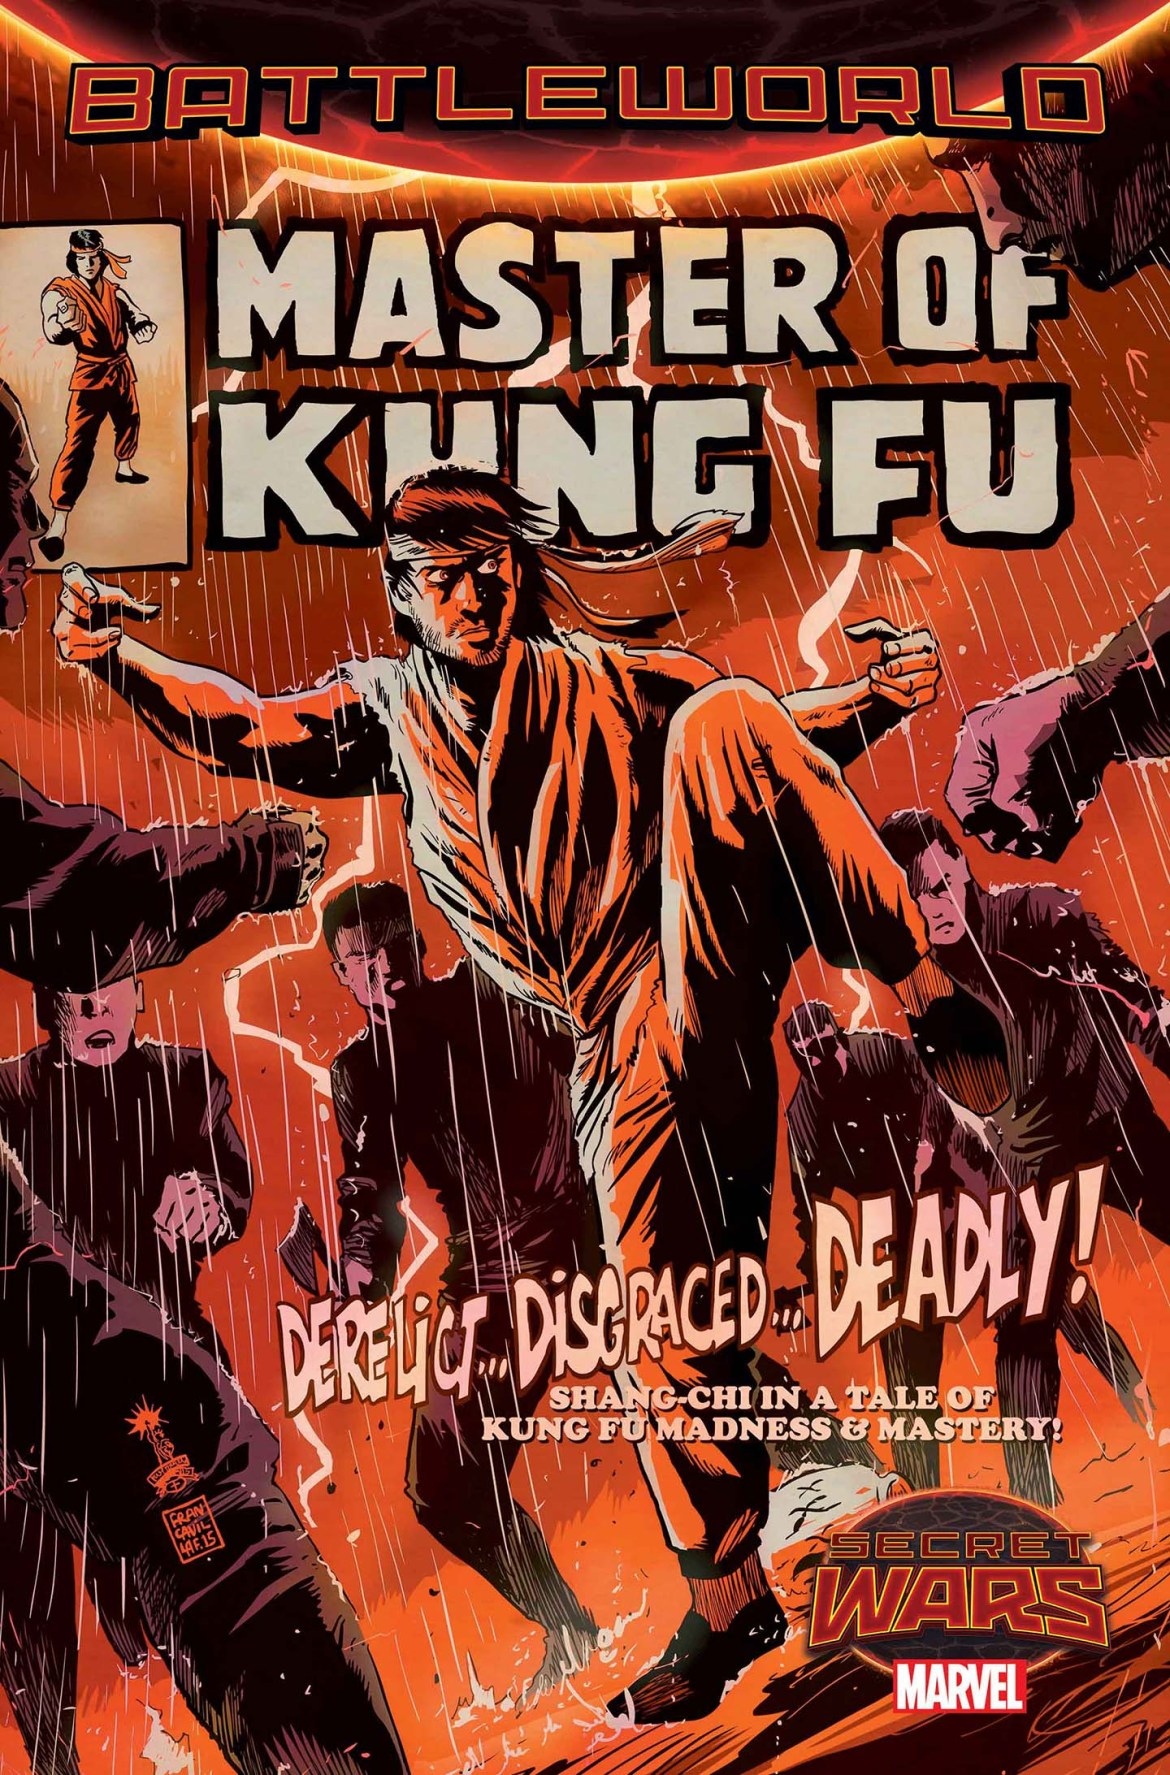 Secret_Wars_MASTER_OF_KUNG_FU SECRET WARS launches the contest to become MASTER OF KUNG-FU